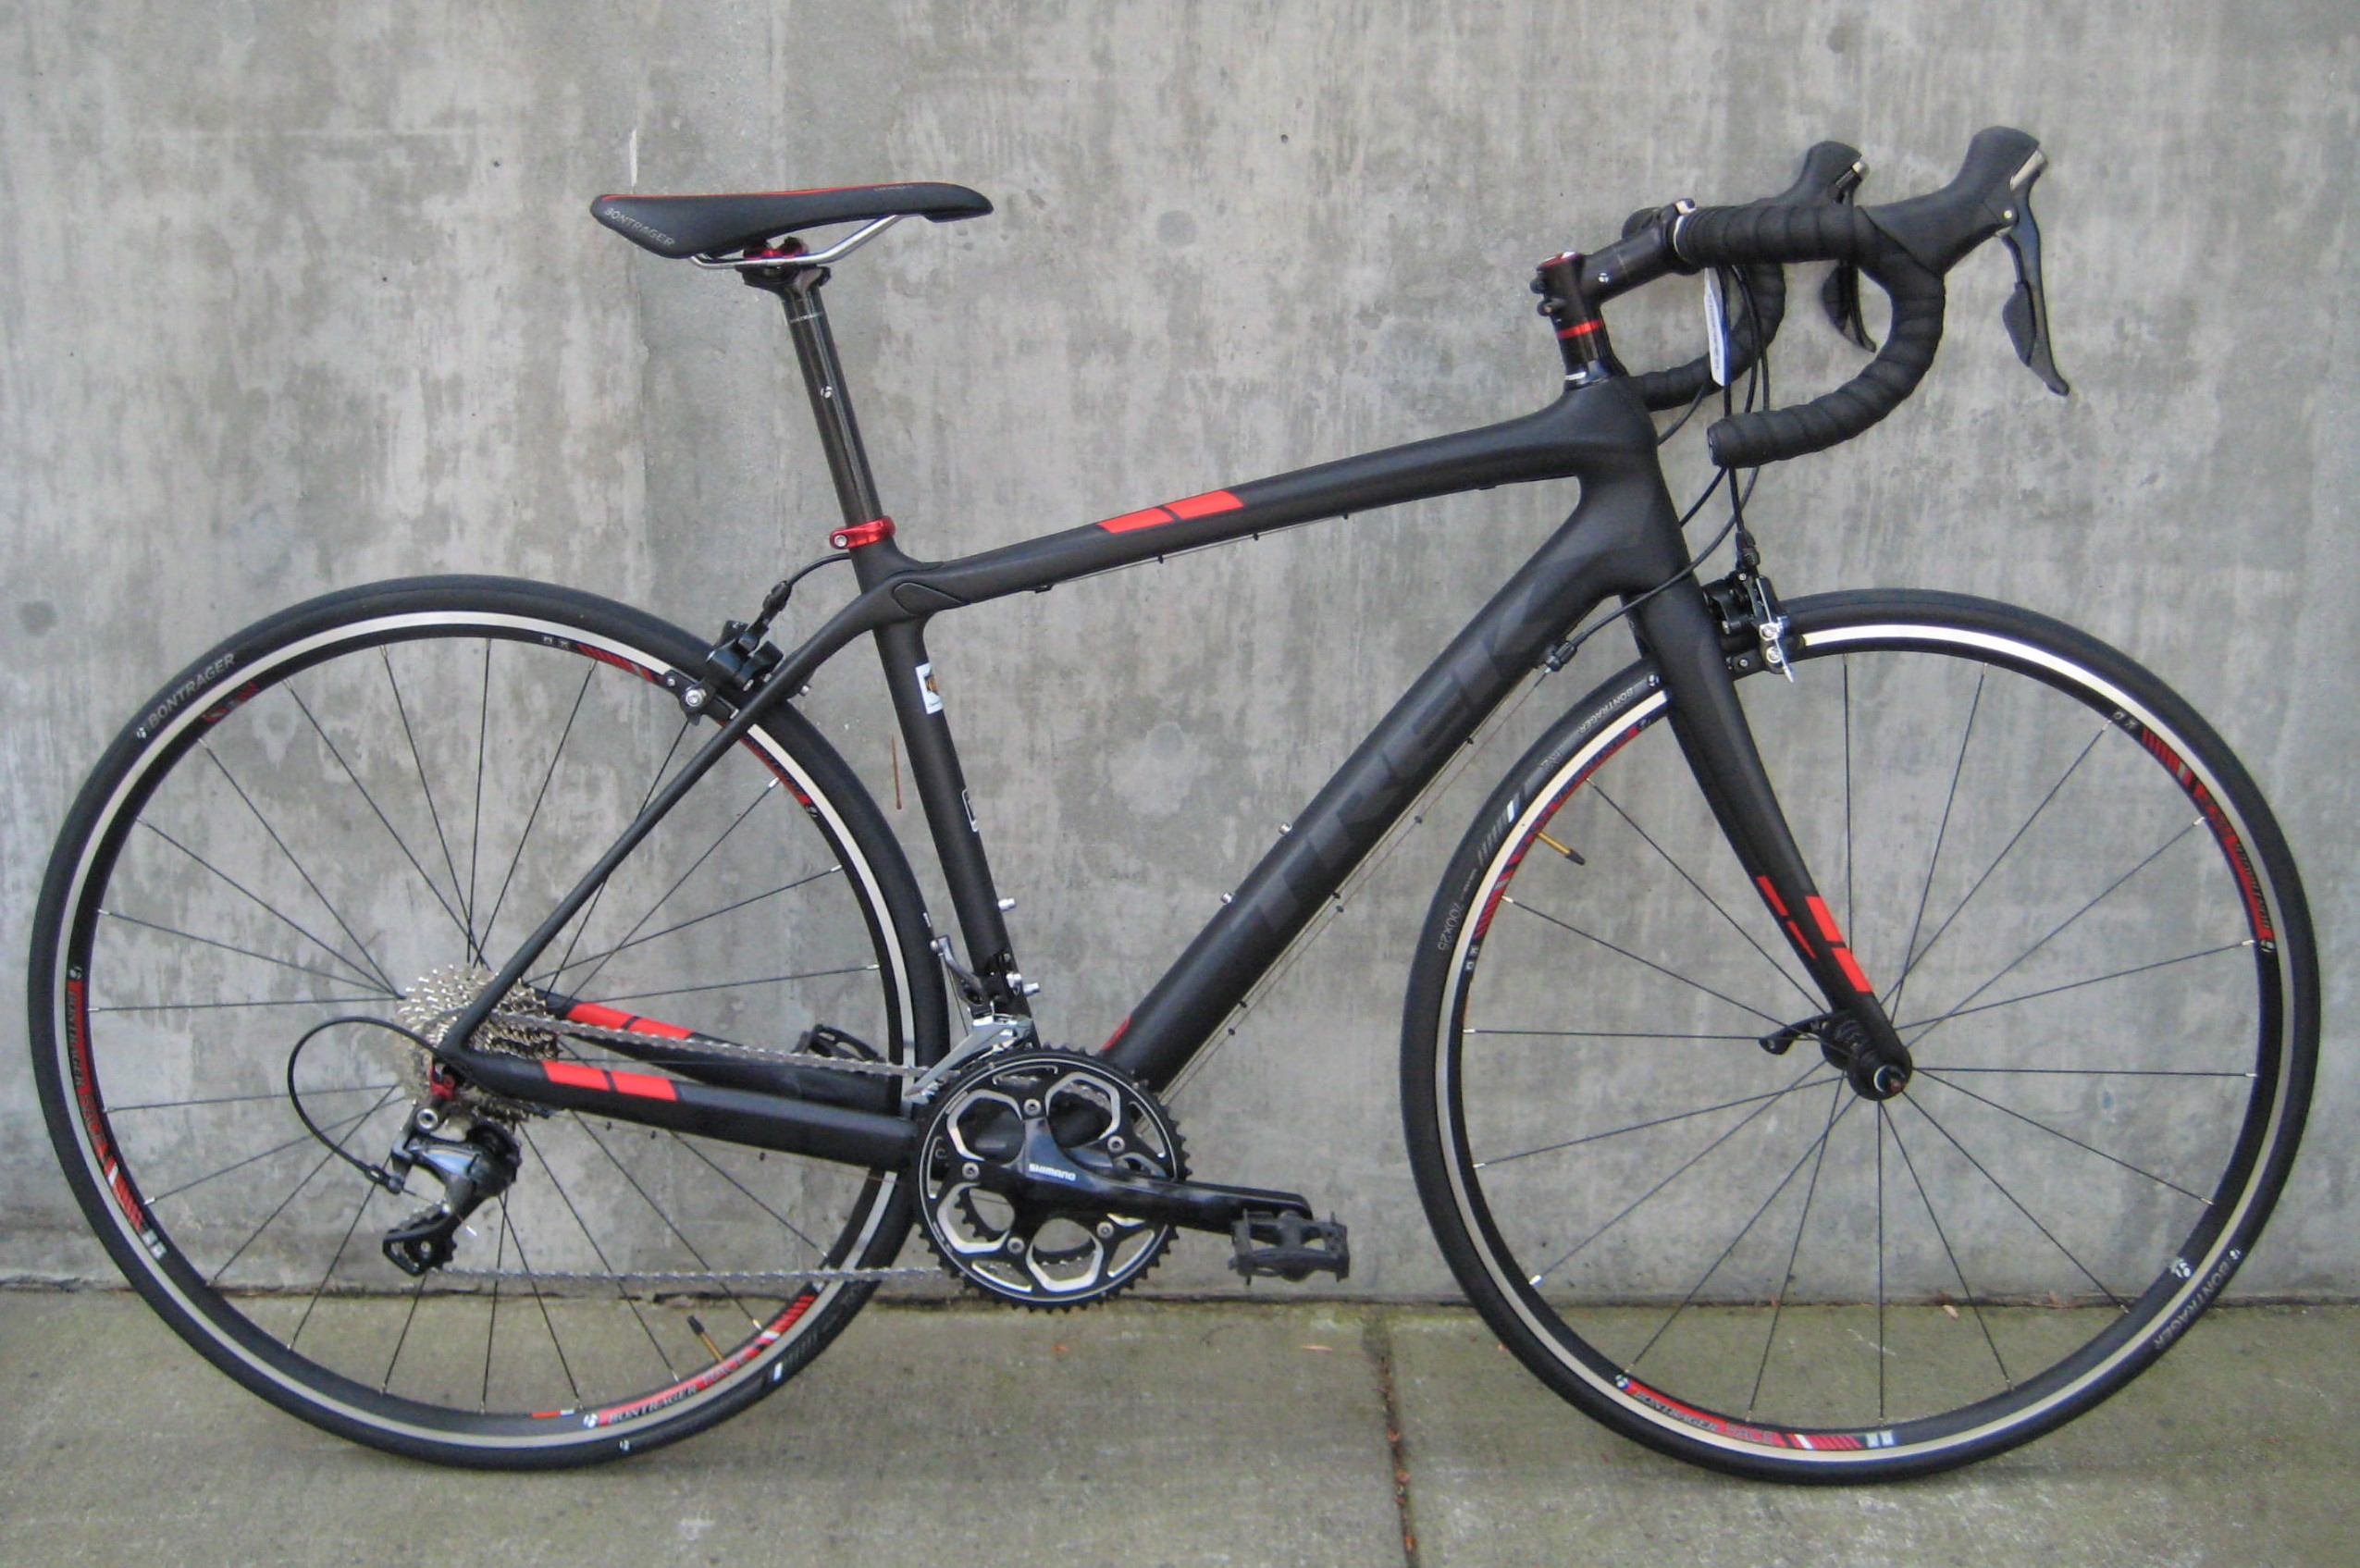 Trek Domane Road Bikes For Sale At Classic Cycle Classic